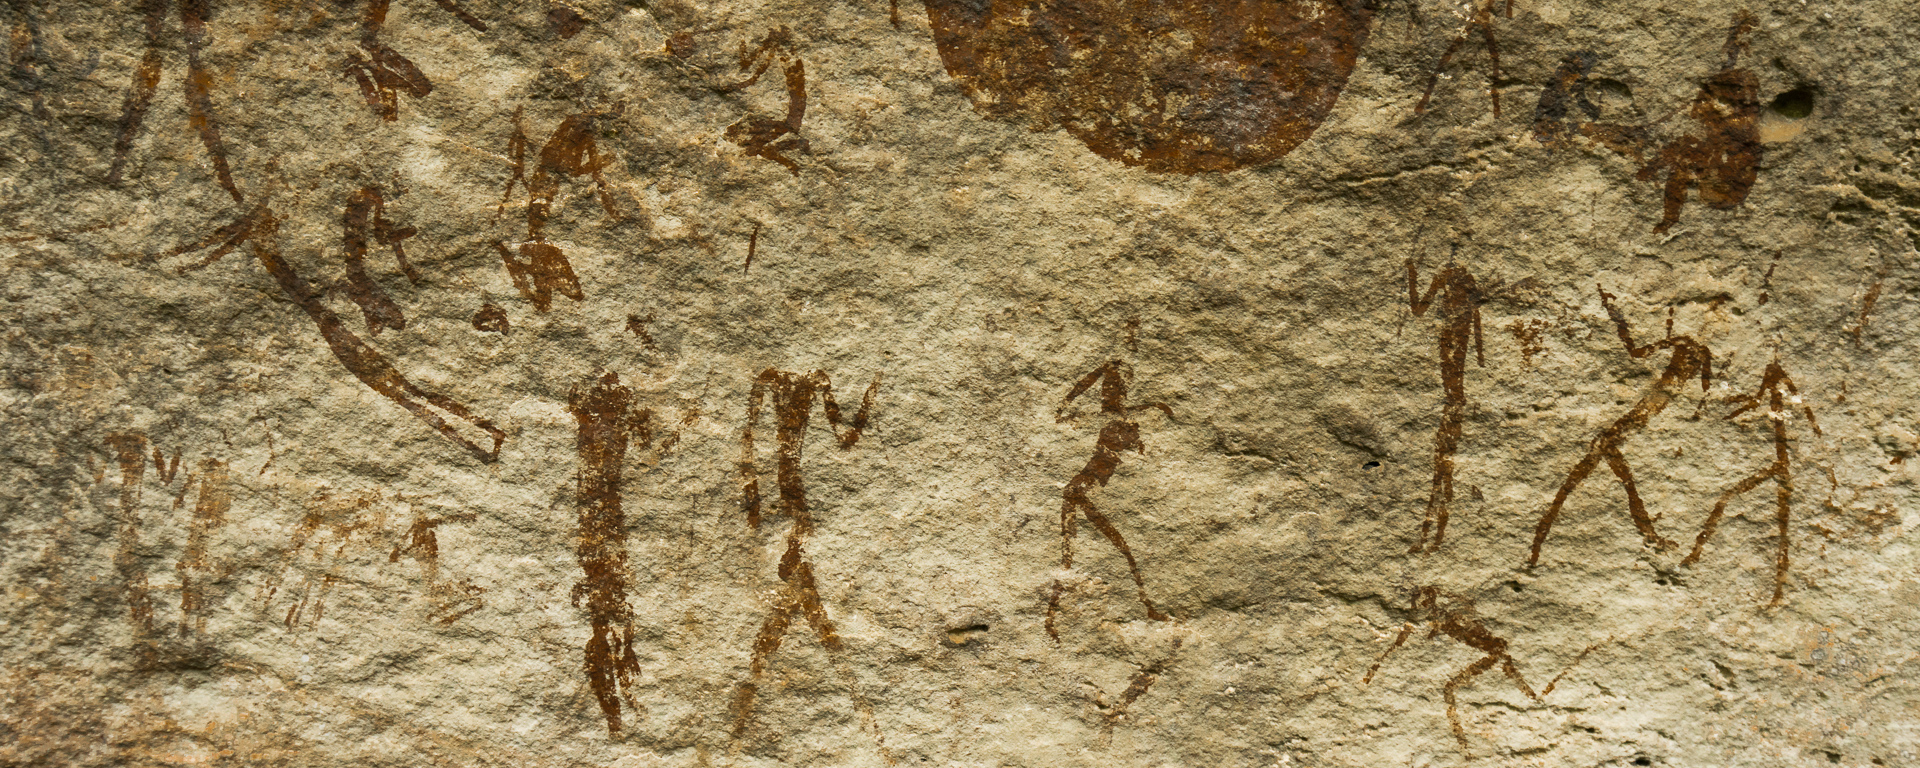 The Drakensberg is one of the best places in the world to see Rock Art. These paintings are in some cases thousands of years old.